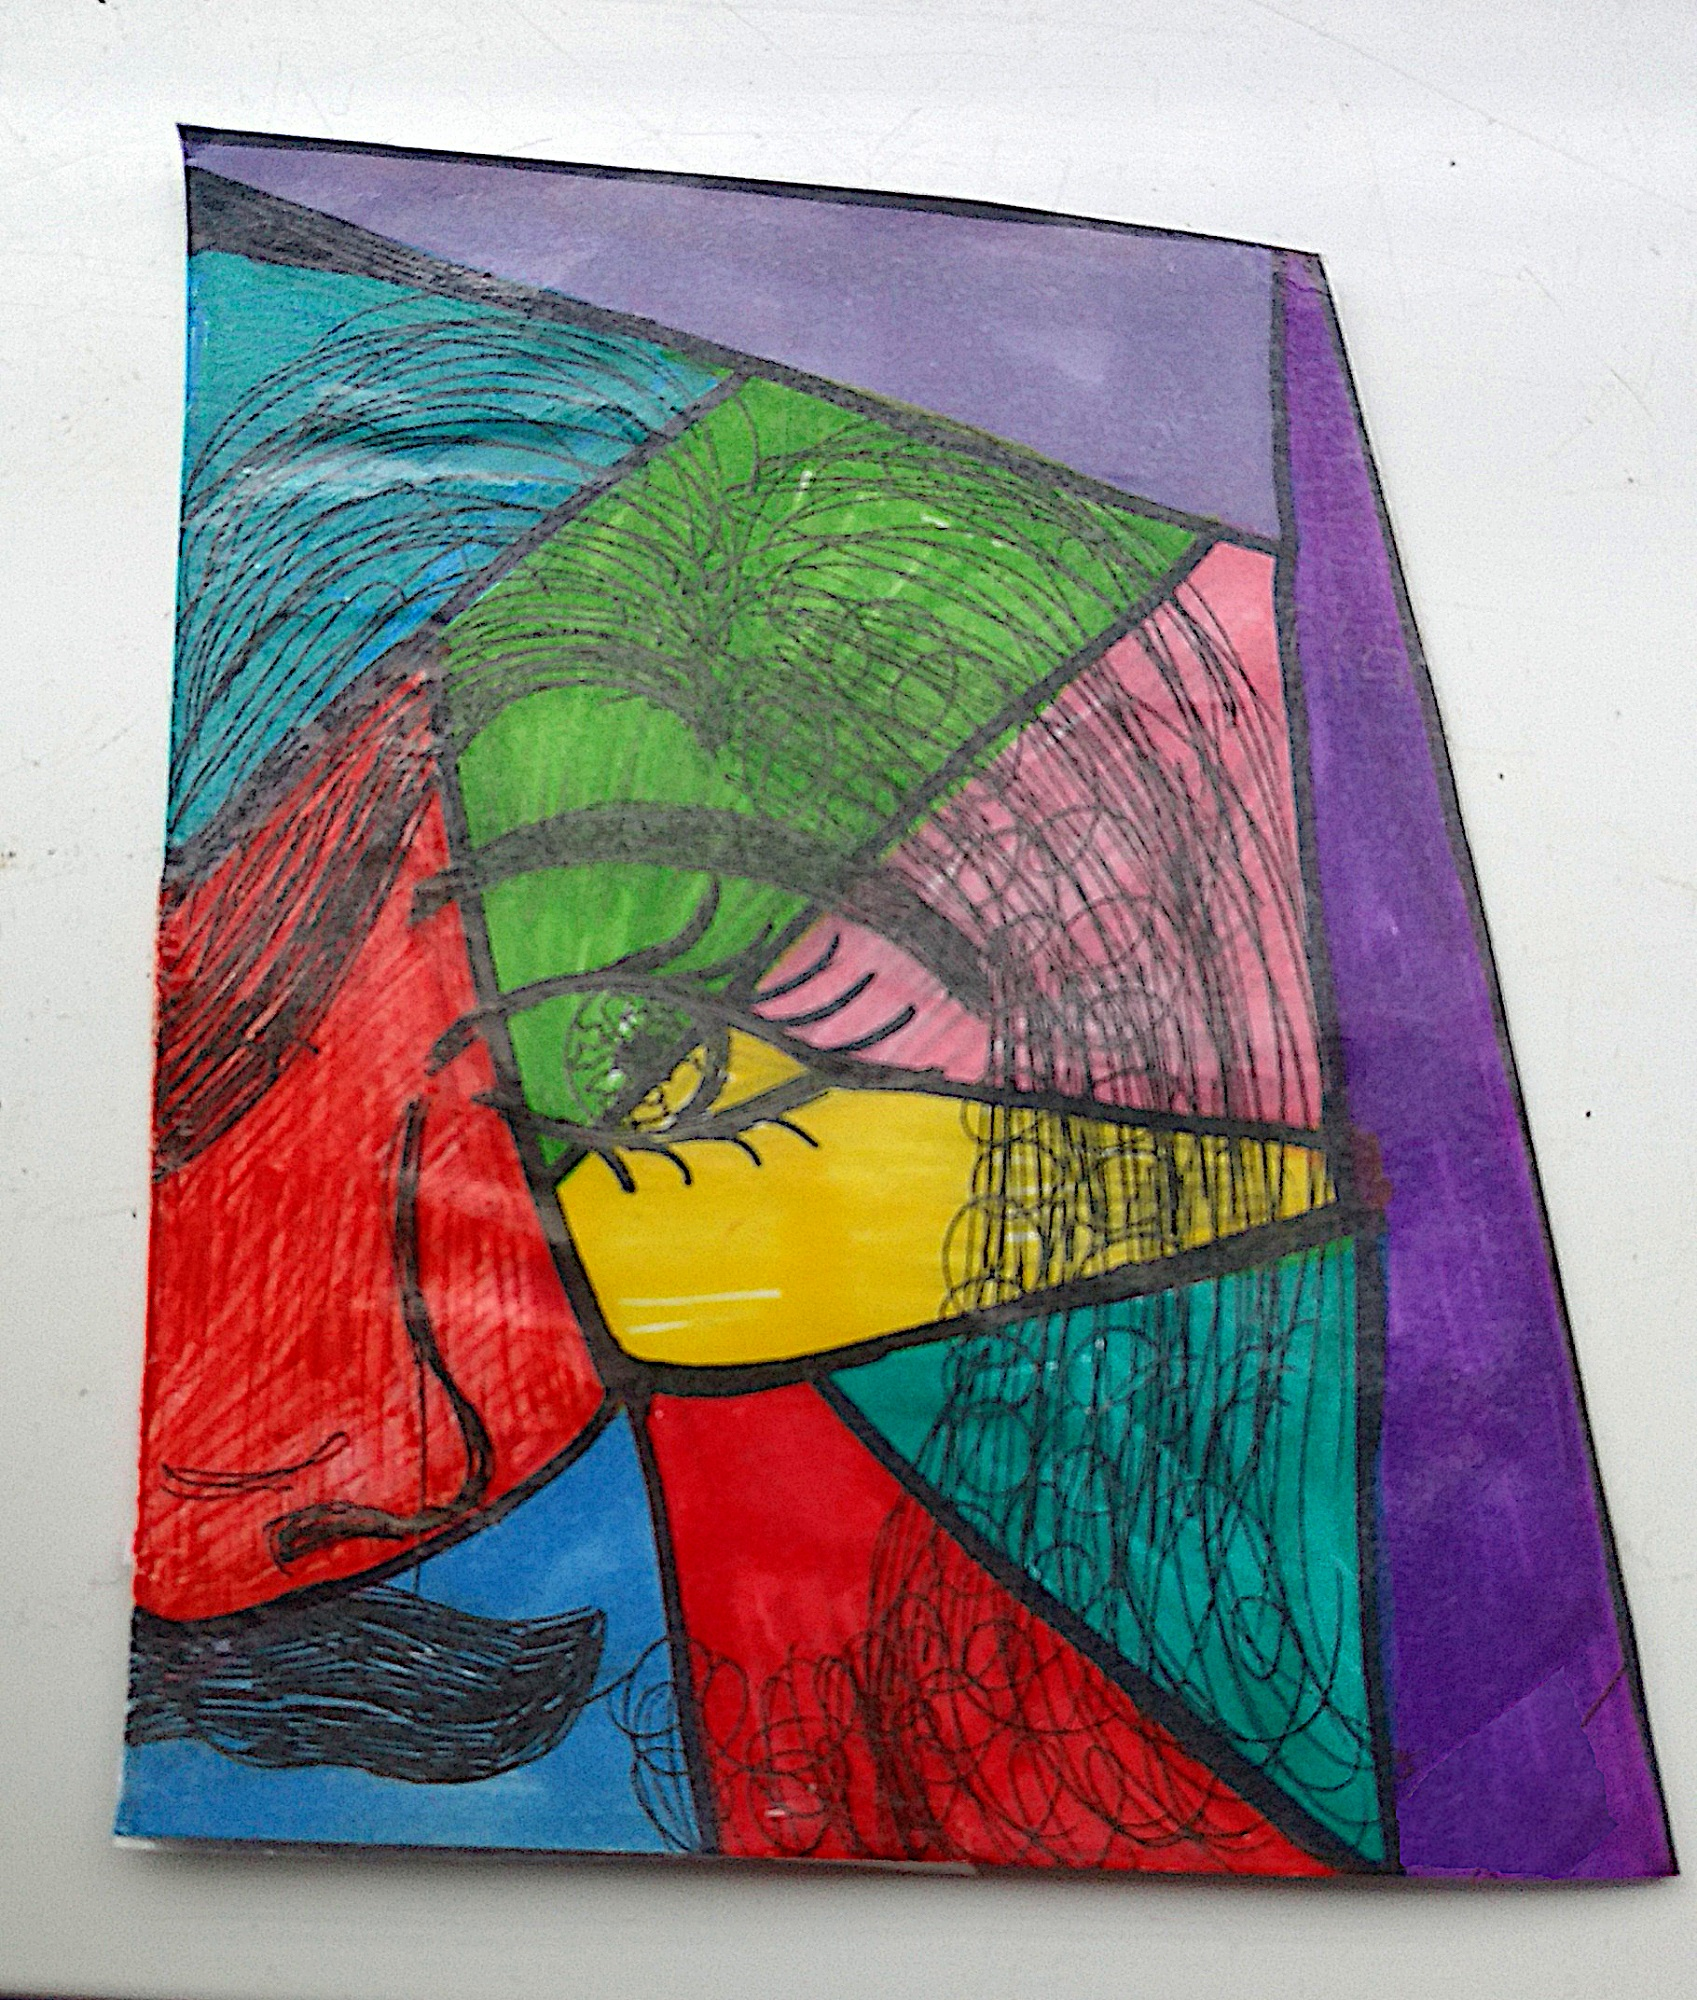 A colourful, block image produced by Ruth